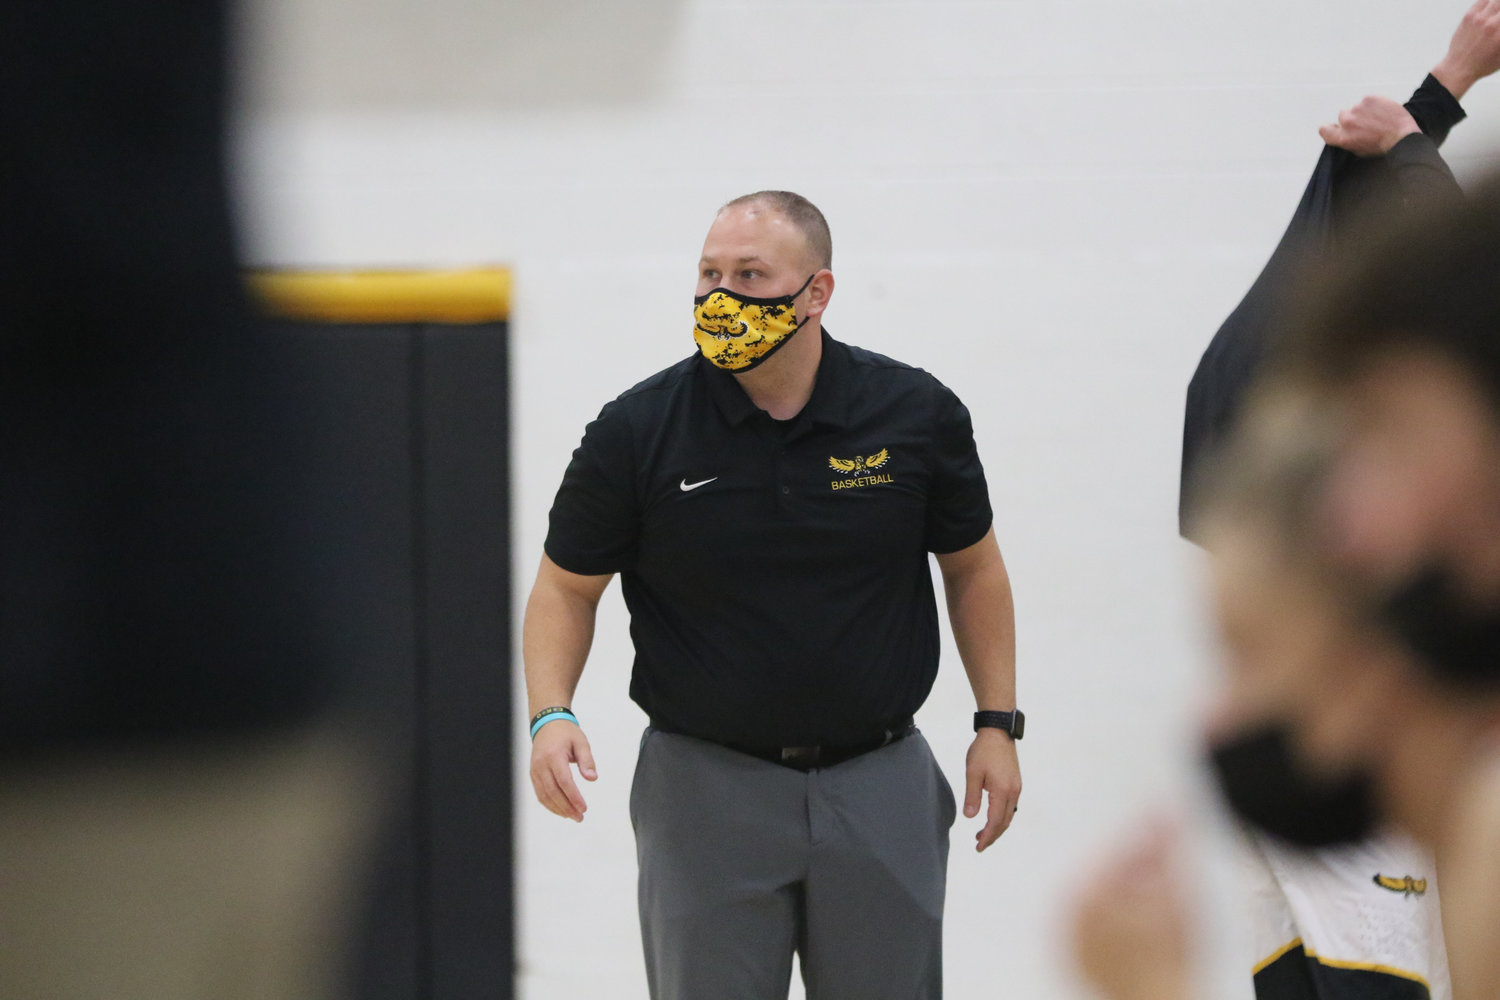 Mid-Prairie coach Daren Lambert watches the action during the first quarter of a scrimmage with Mediapolis in Wellman on Saturday, November 21.